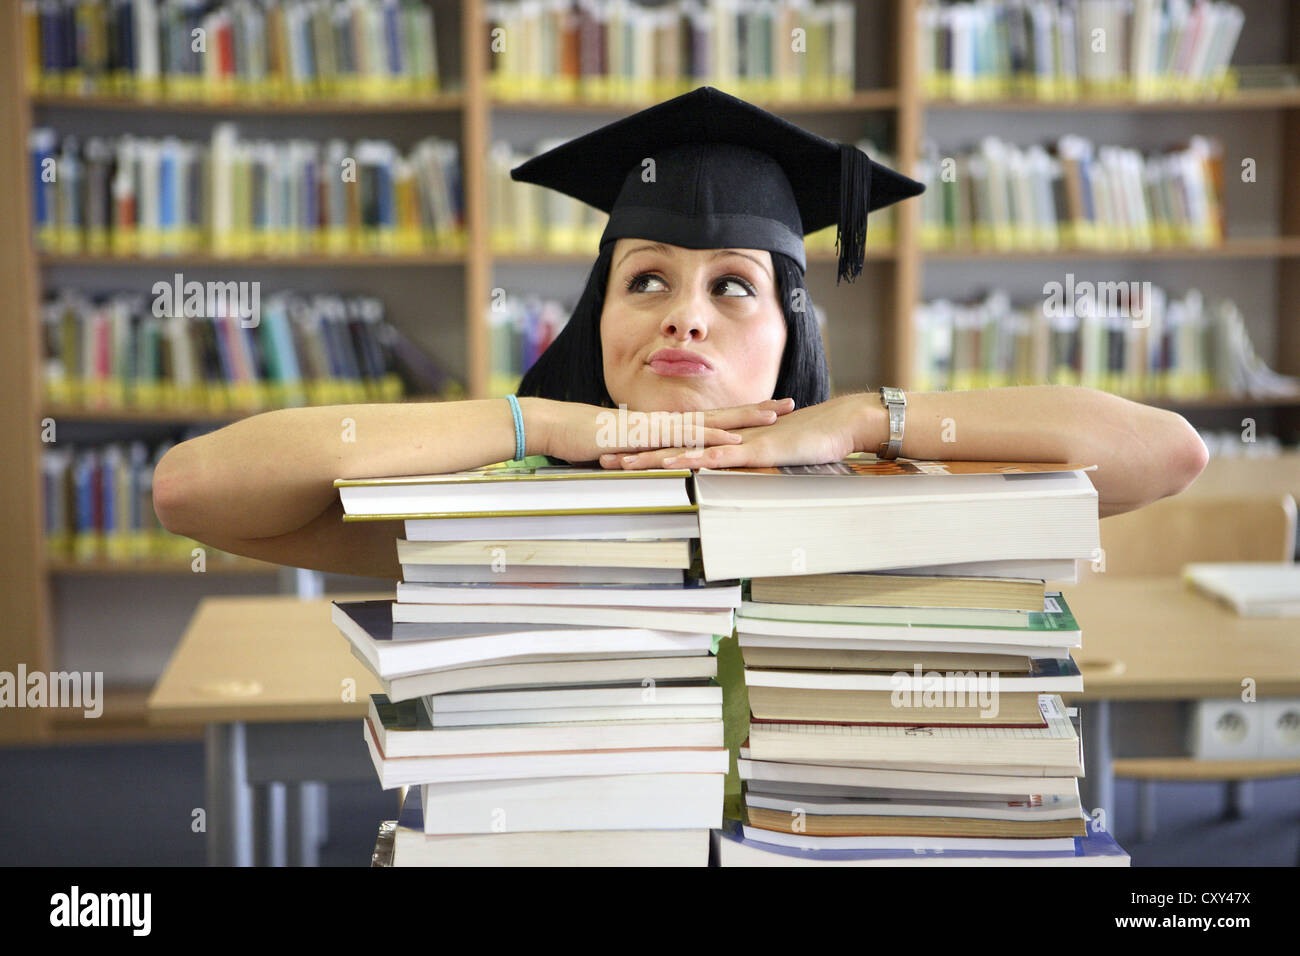 Skeptical looking female student wearing a graduation cap behind stacks of books in a university library - Stock Image